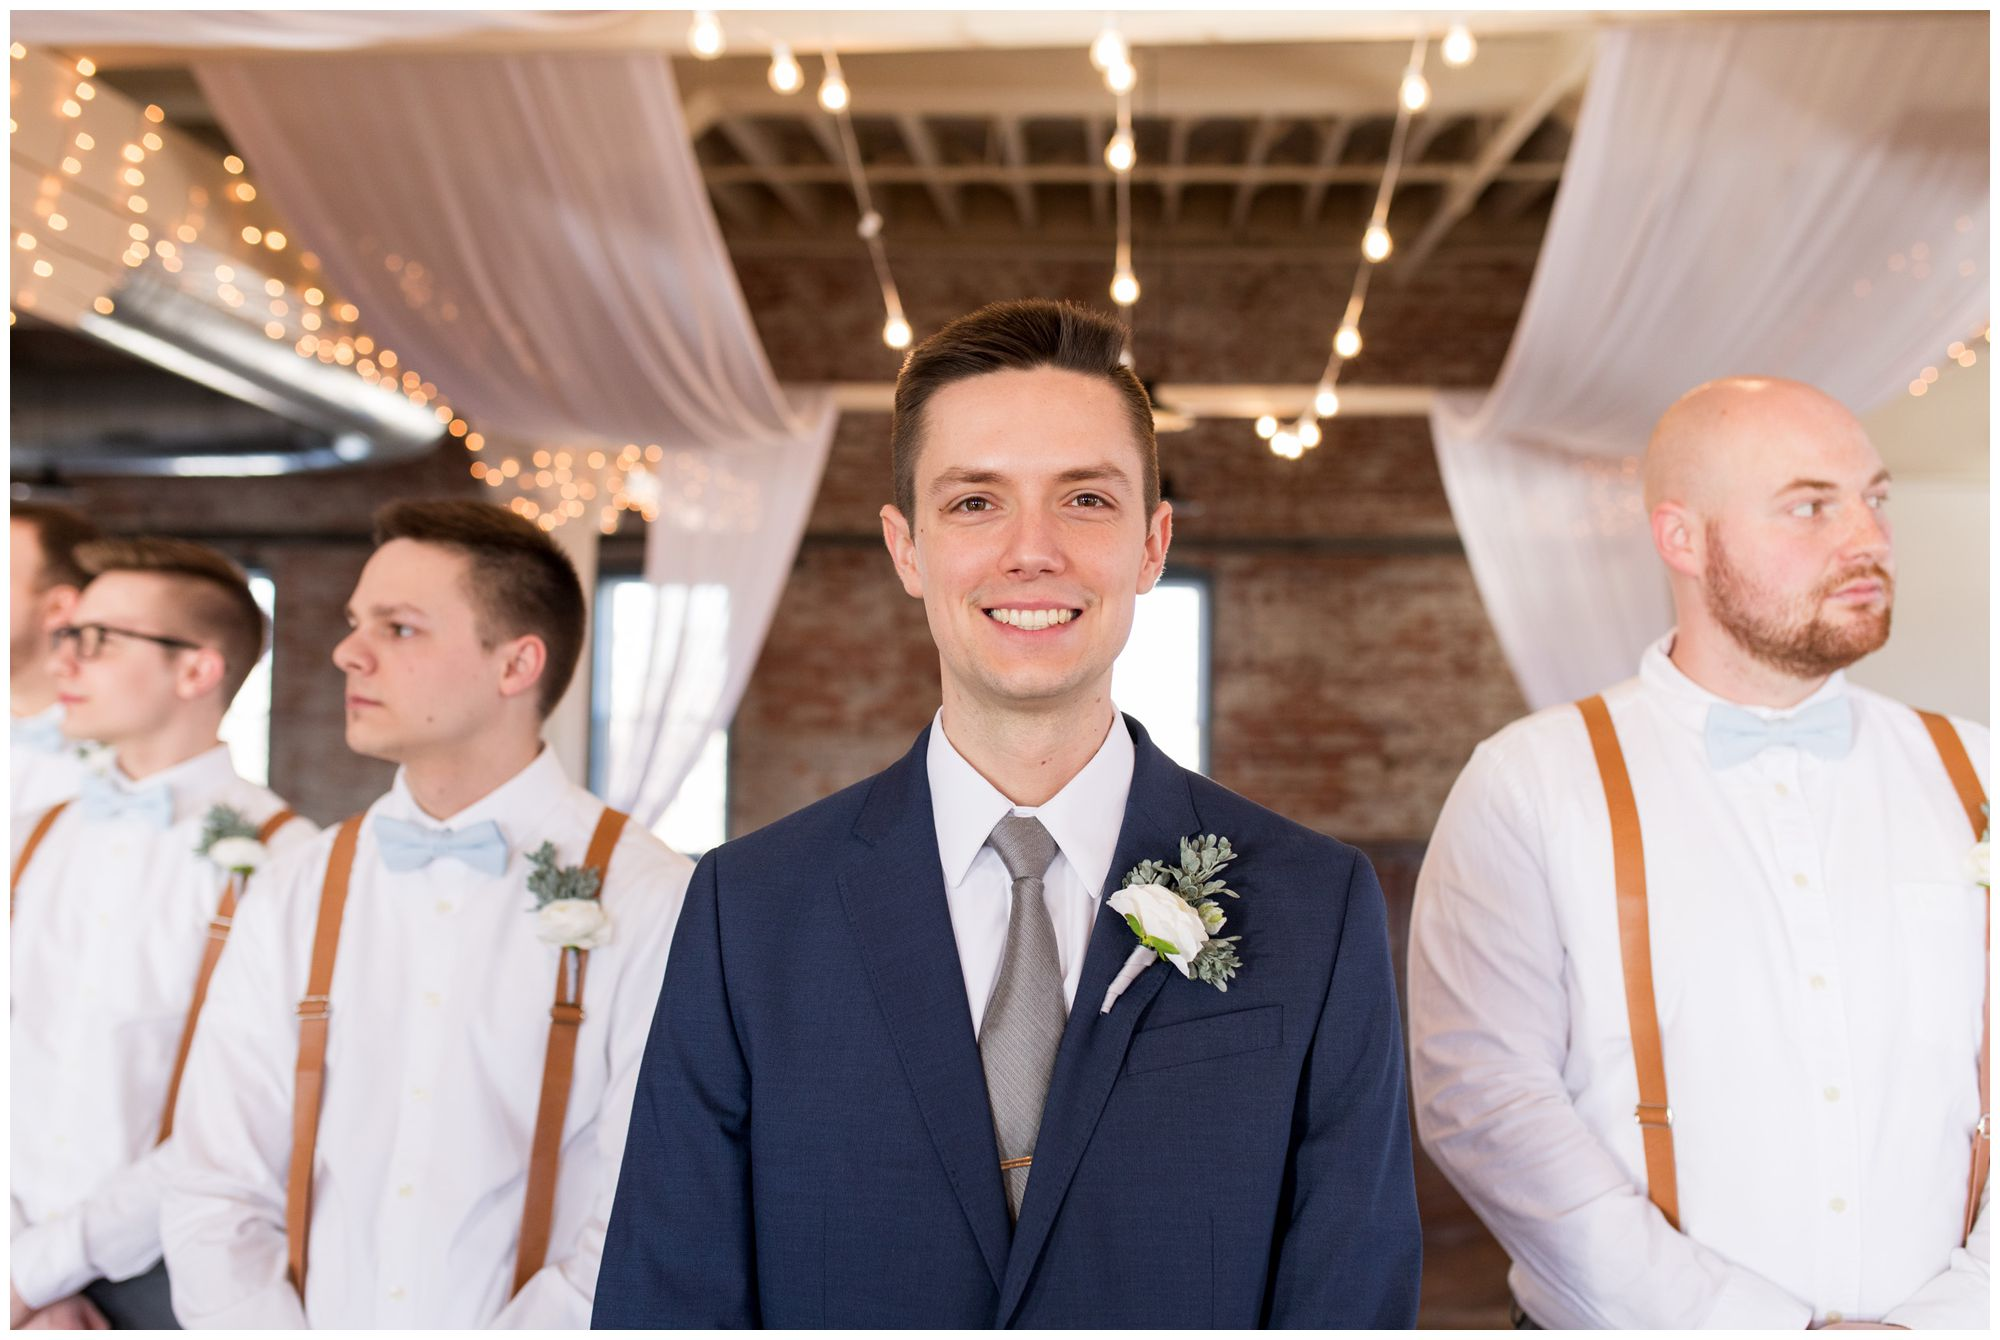 groom and groomsmen portraits before wedding ceremony at Bread & Chocolate